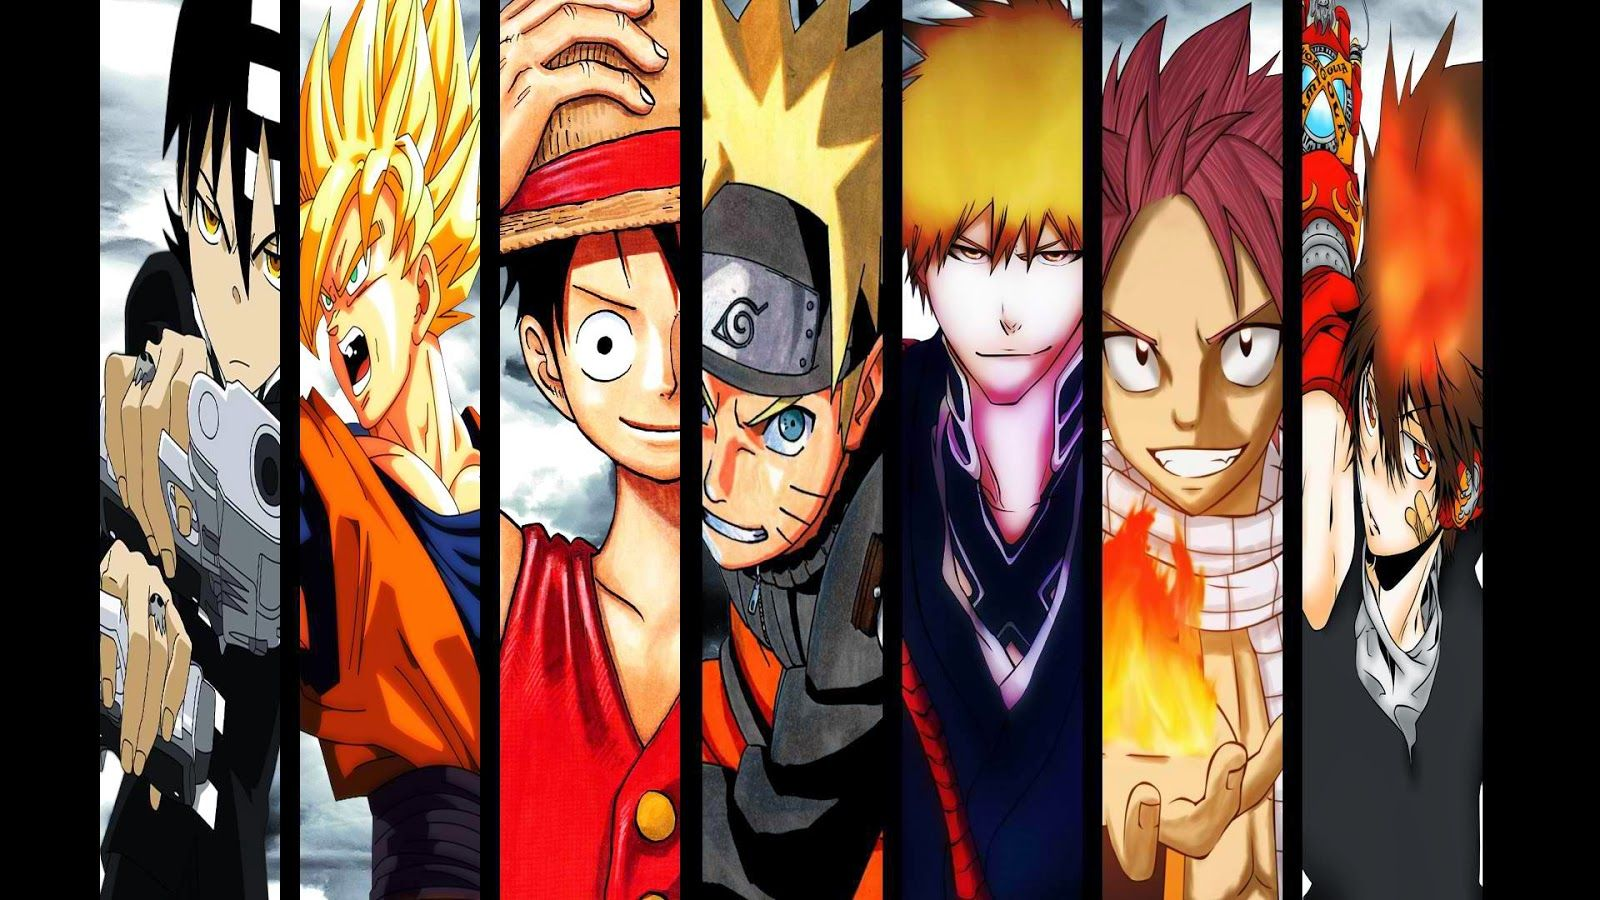 Anime Crossover Soul Eater Dragon Ball Z One Piece Naruto Bleach Fairy Tail Hitman Reborn